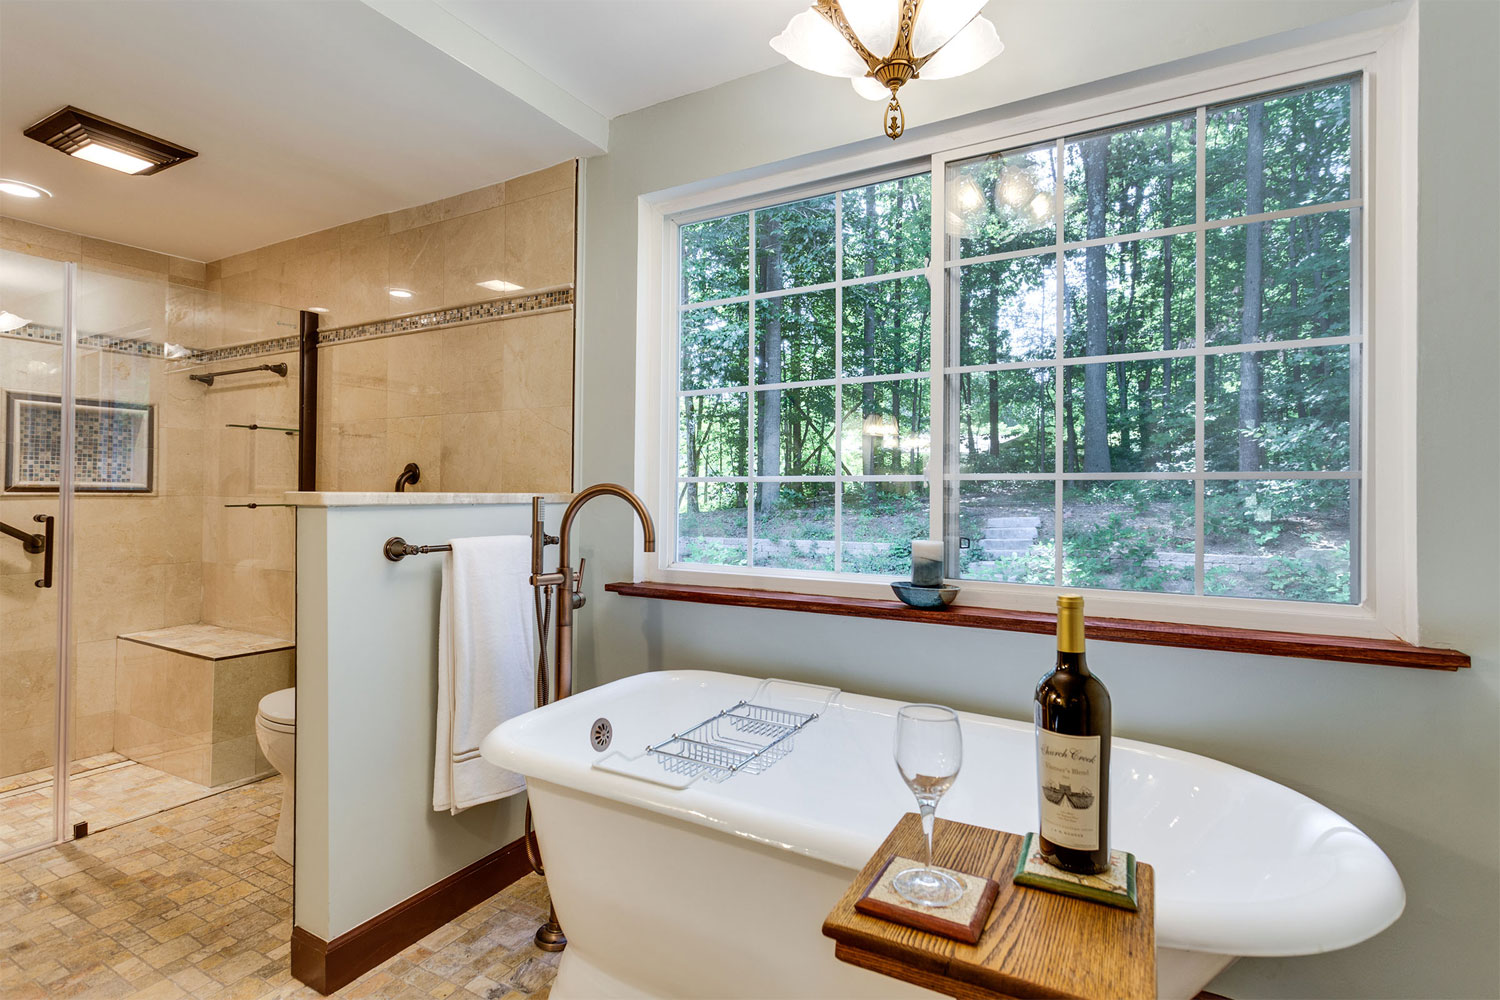 Bathroom Remodeling Services - A&C Remodeling Contractors